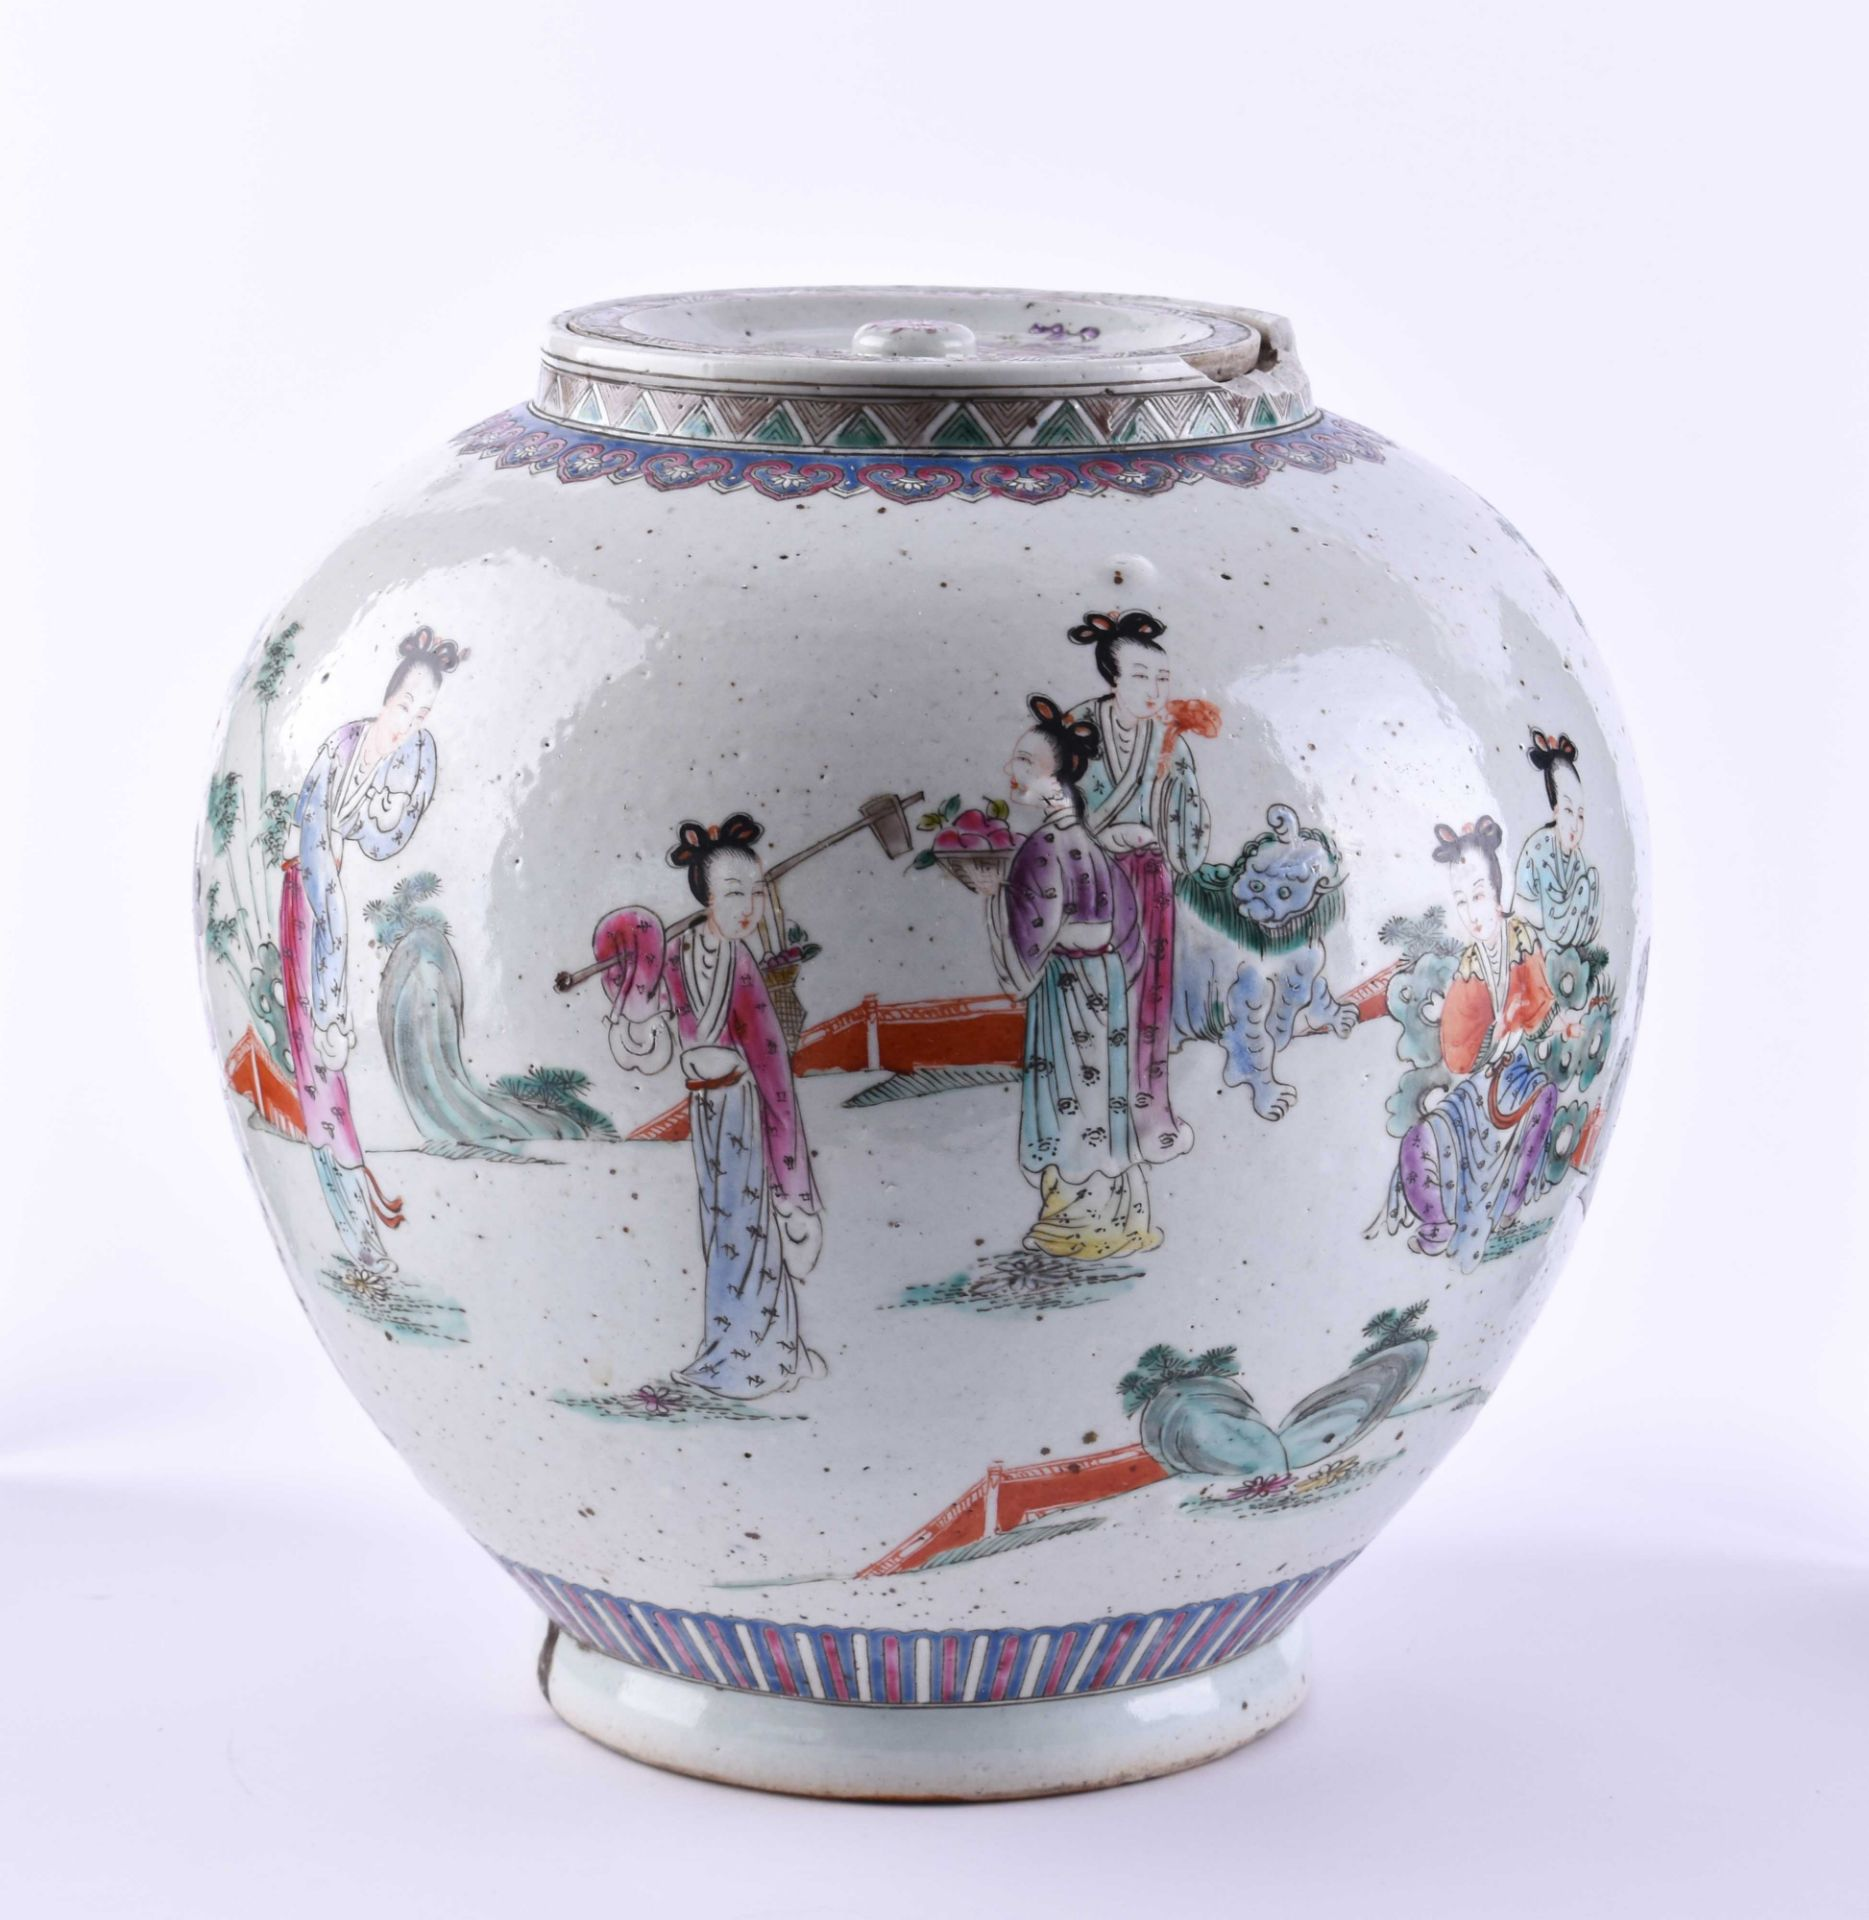 Ginger pot China late Qing period - Image 3 of 7